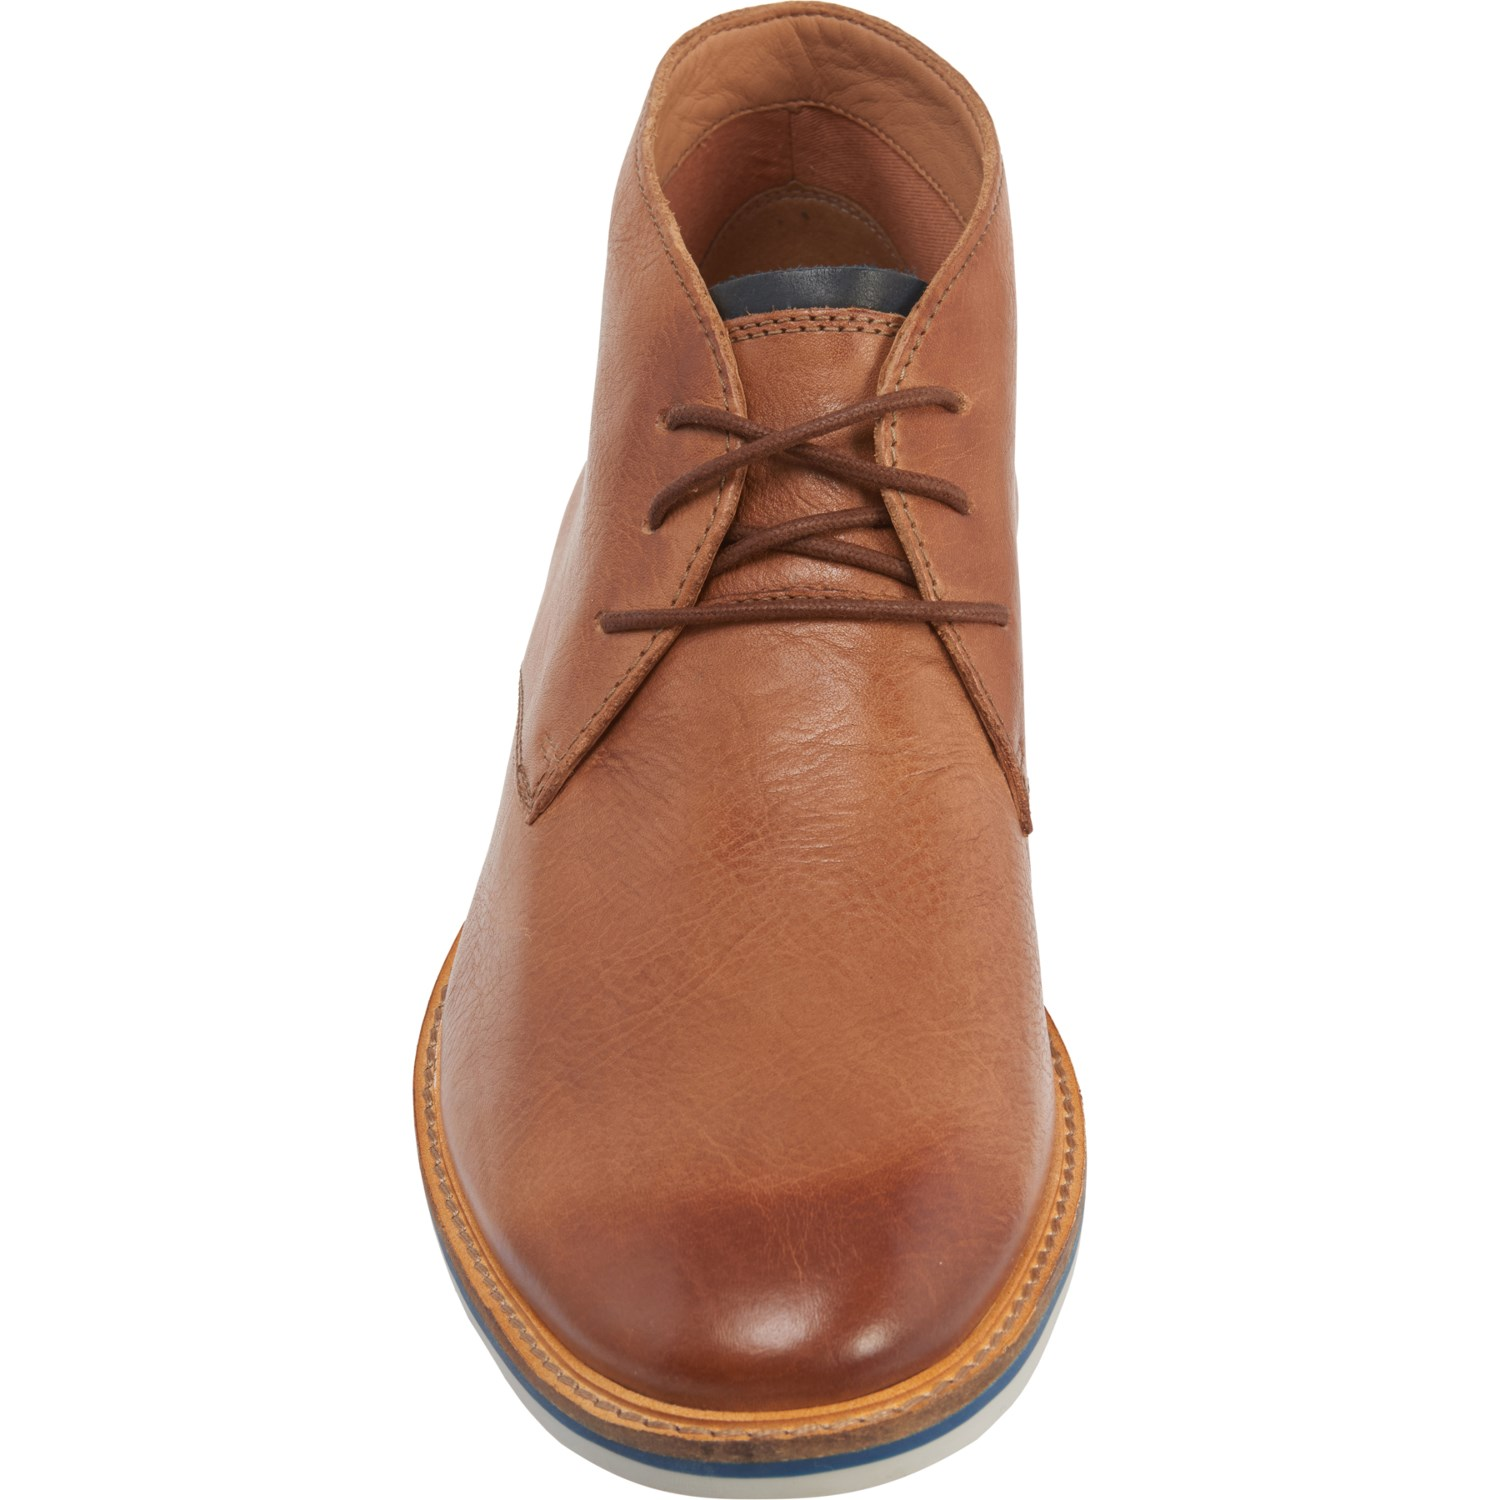 new styles size 7 exclusive shoes Clarks Atticus Limit Chukka Boots - Leather (For Men)